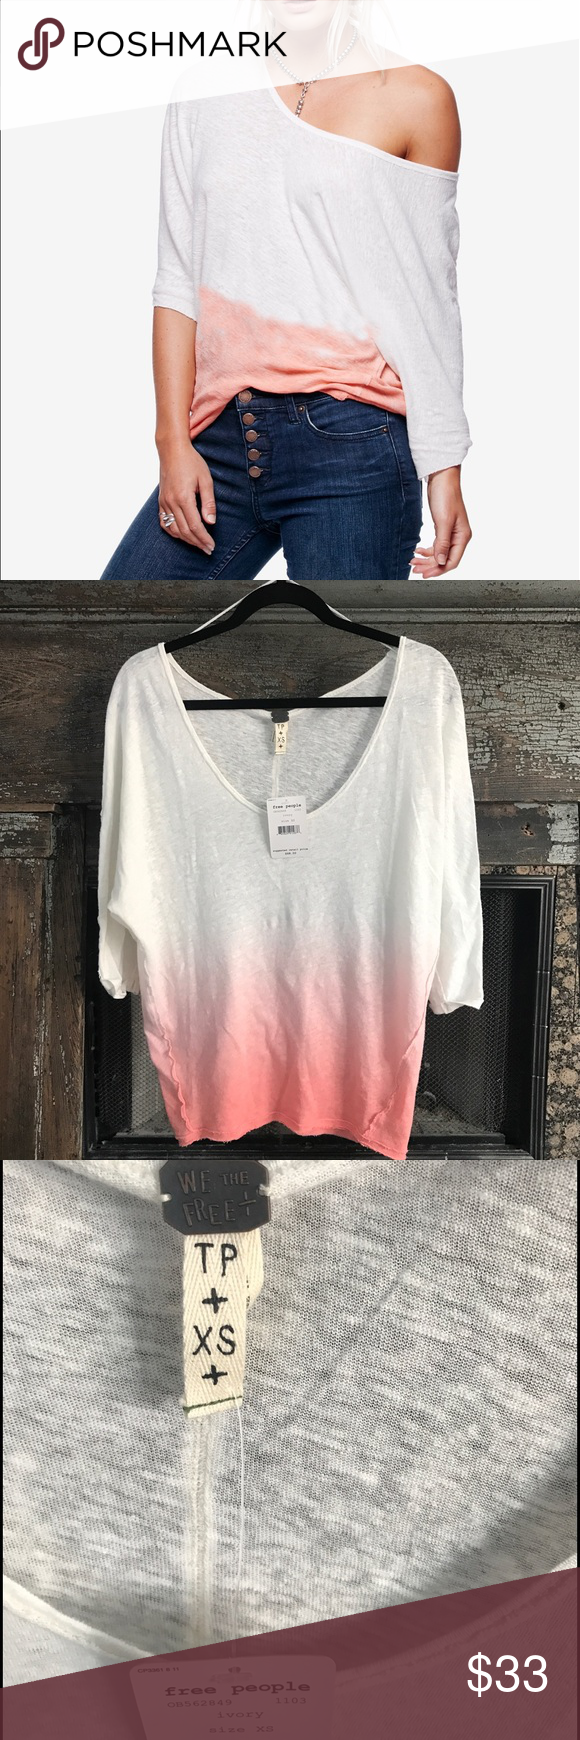 🌸Free People🌸 Ombré Top Sz XS Beautiful ombré  colored Free People Blouse. NWT 😊. I accept reasonable offers using the offer button only. Thank you for looking and happy poshing 💗 Free People Tops